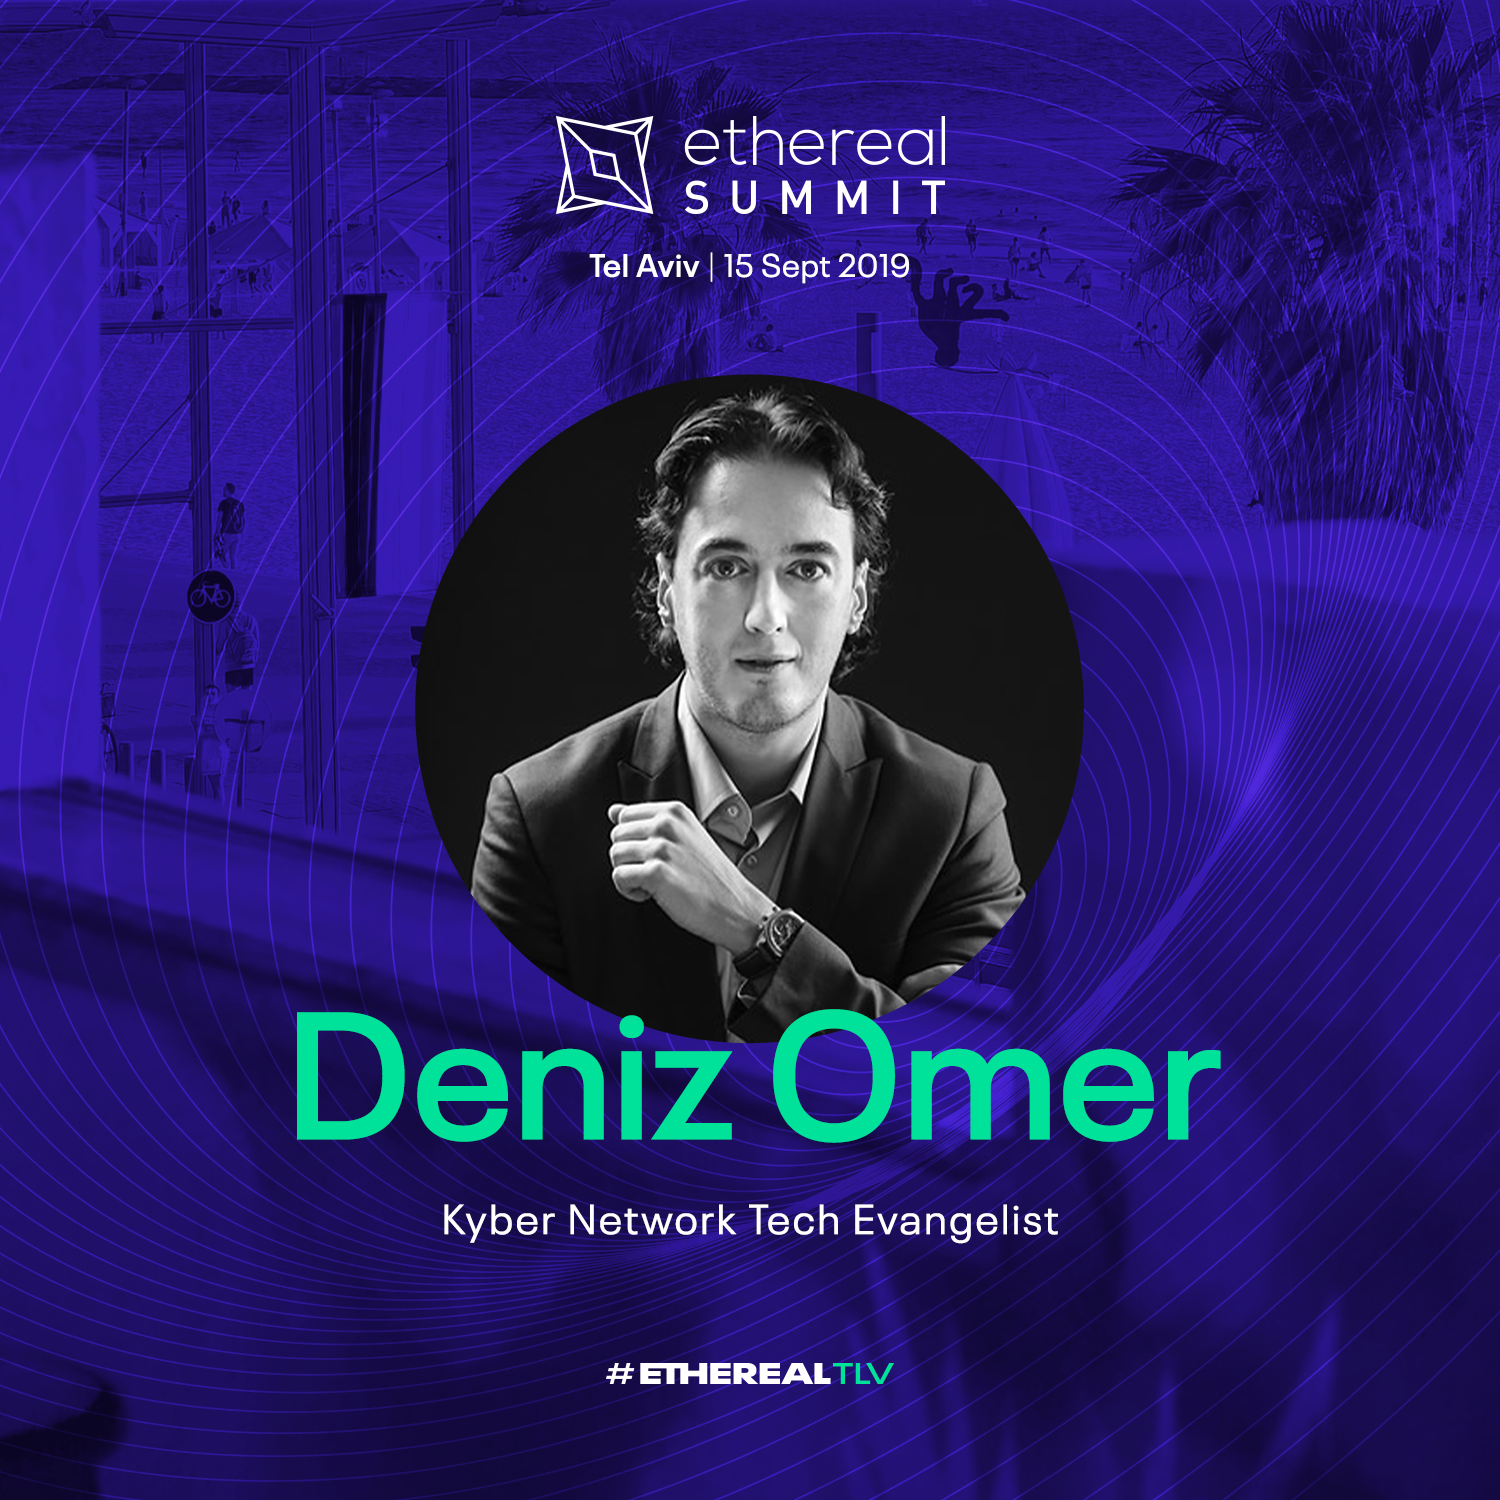 Ethereal Summit 2019 Tel Aviv Speaker Deniz Omer Kyber Network